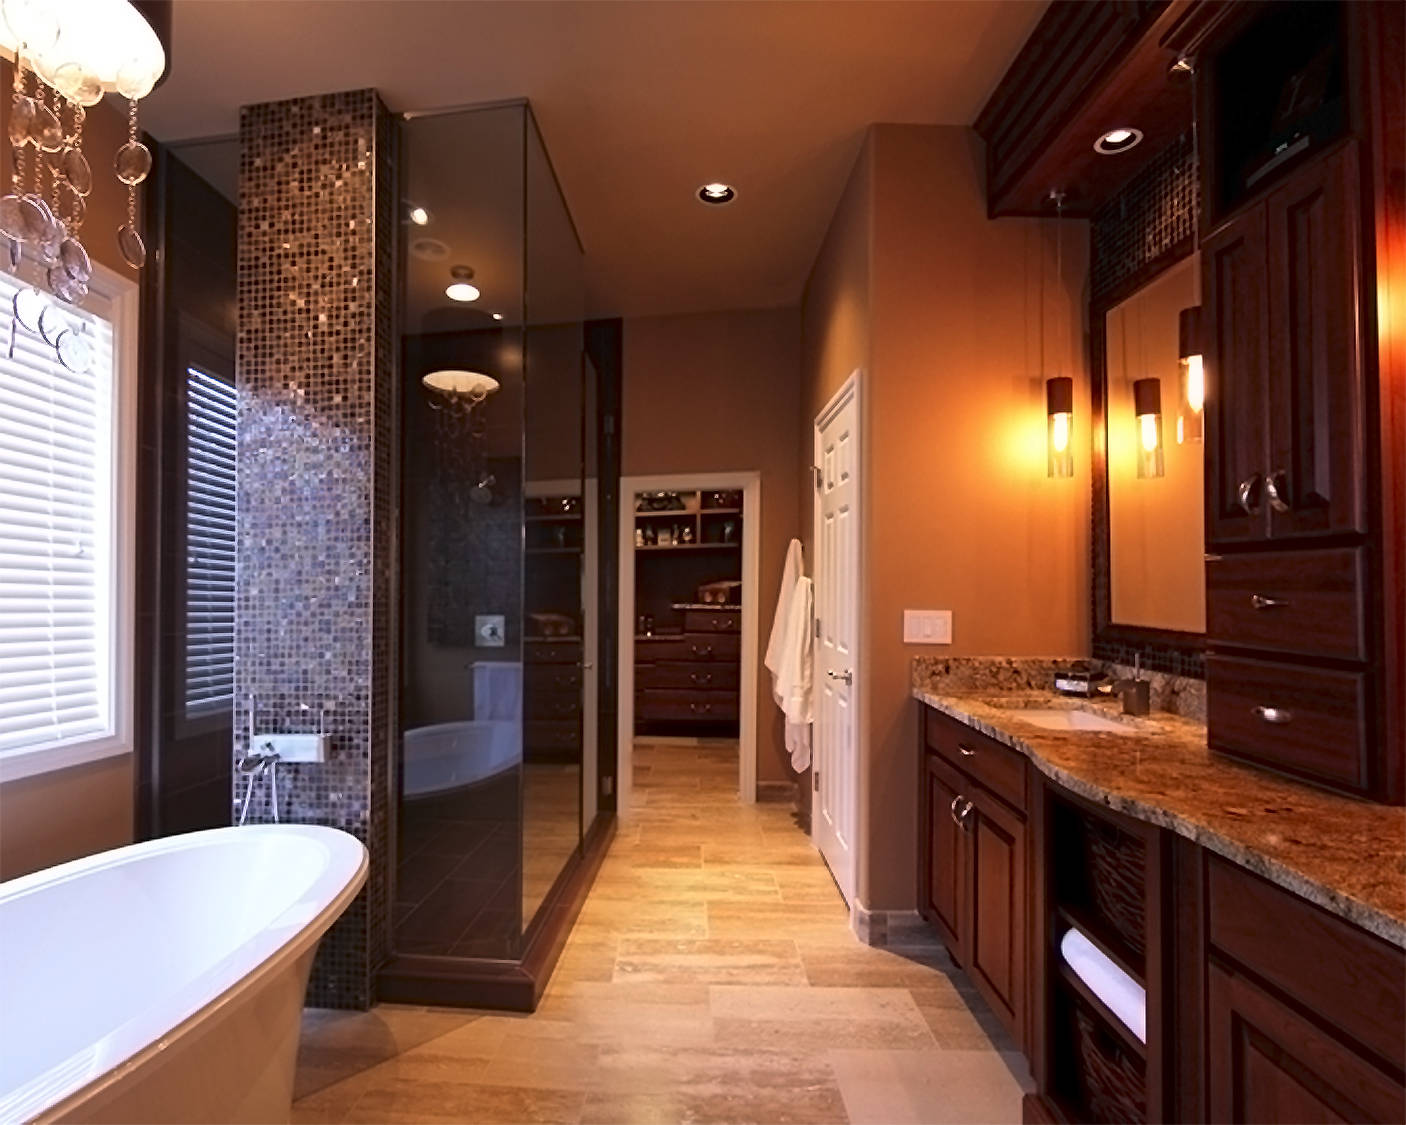 Selin construction bathroom remodel for Home bathroom remodel